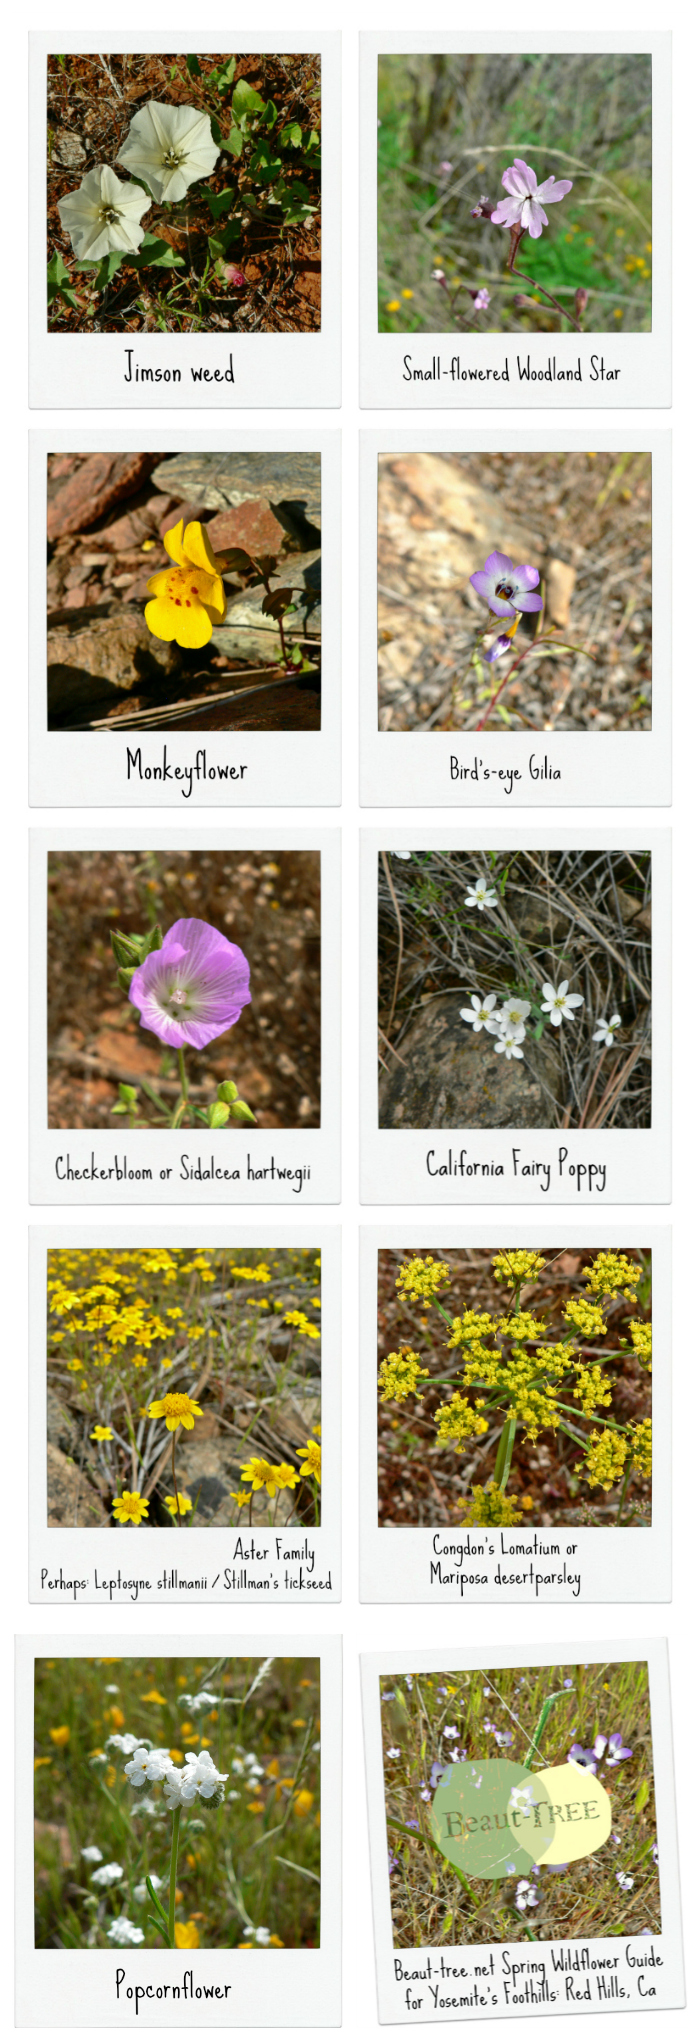 Guide to the Wildflowers in Red Hills CA